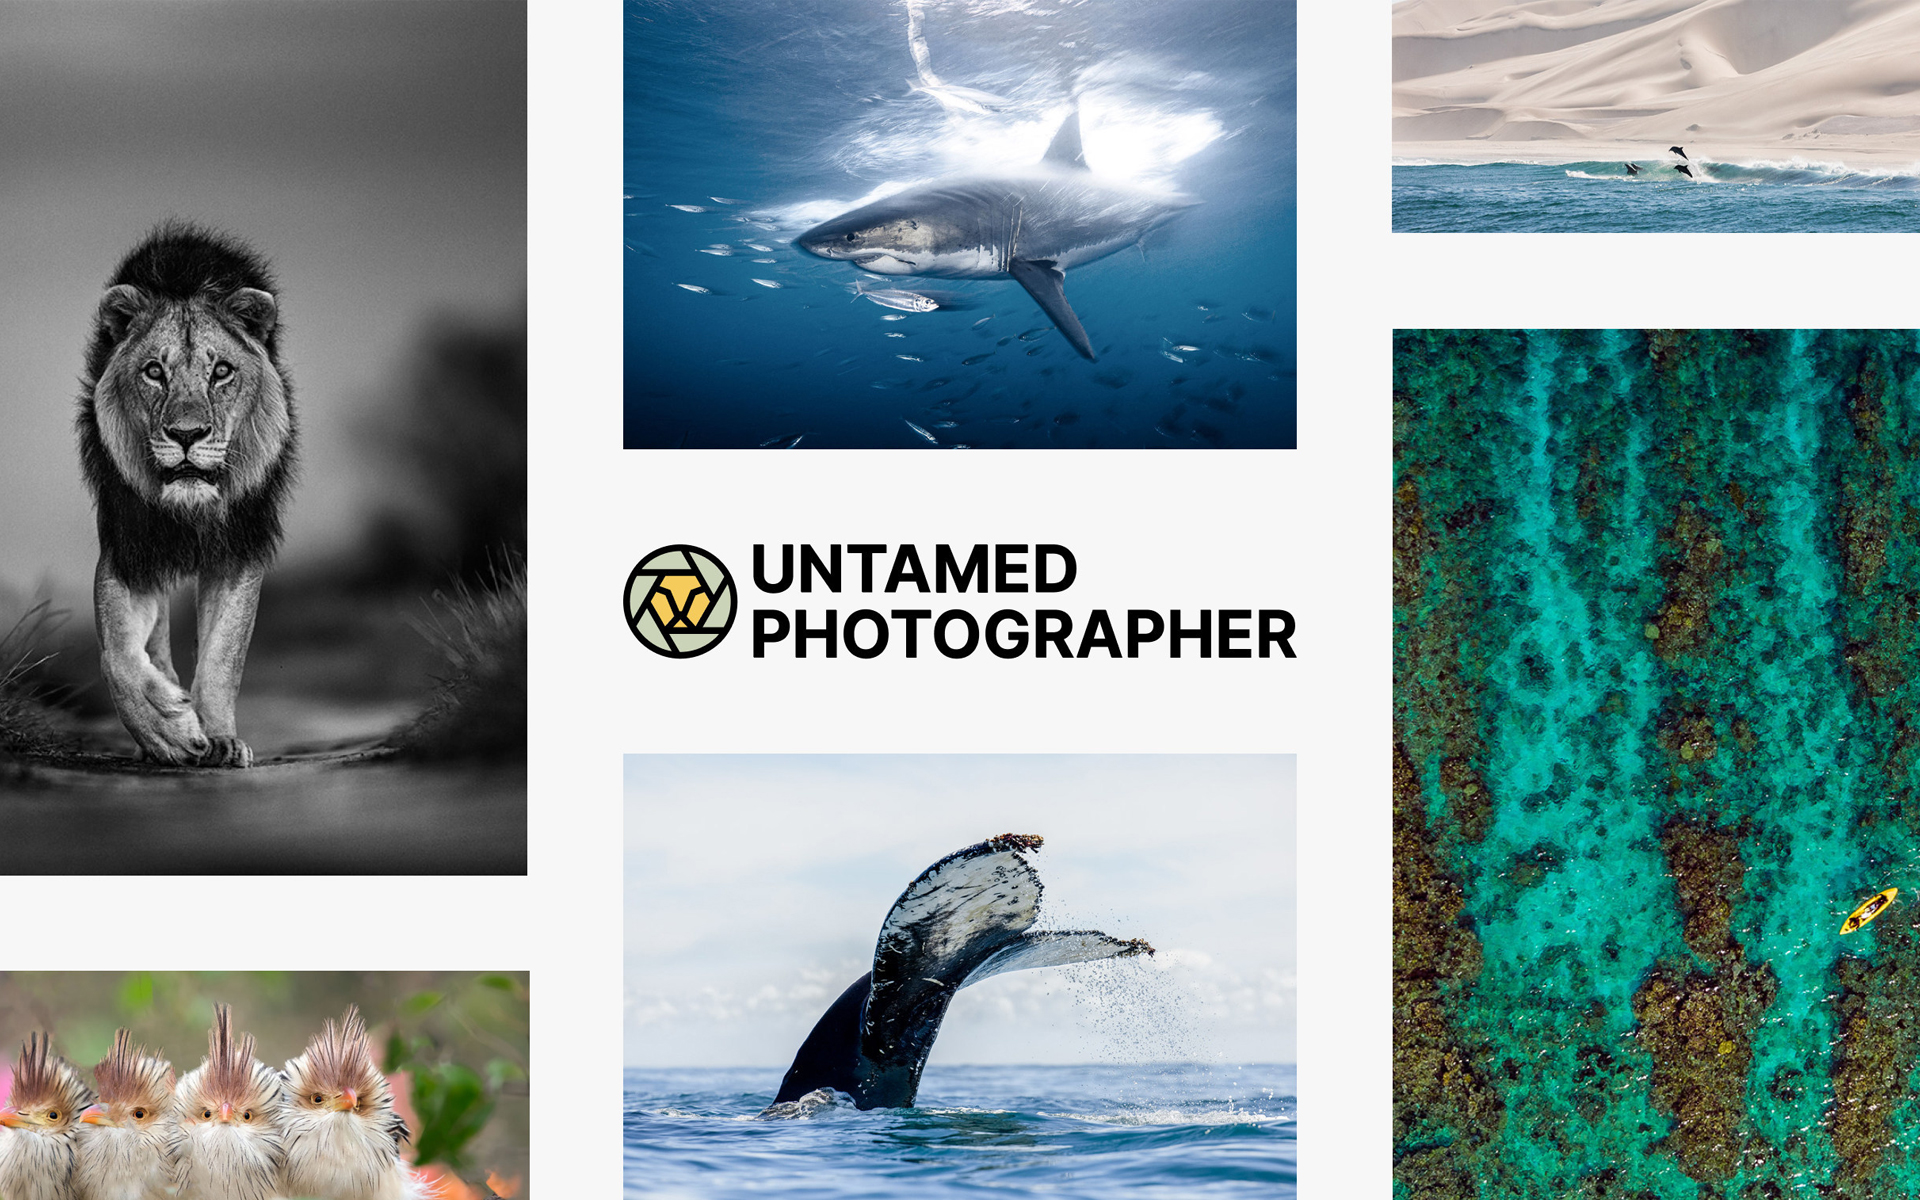 Creatd, Inc. Announces Strategic Investment in Untamed Photographer, NFT Collaboration, and Vocal Community and Challenge Sponsorships